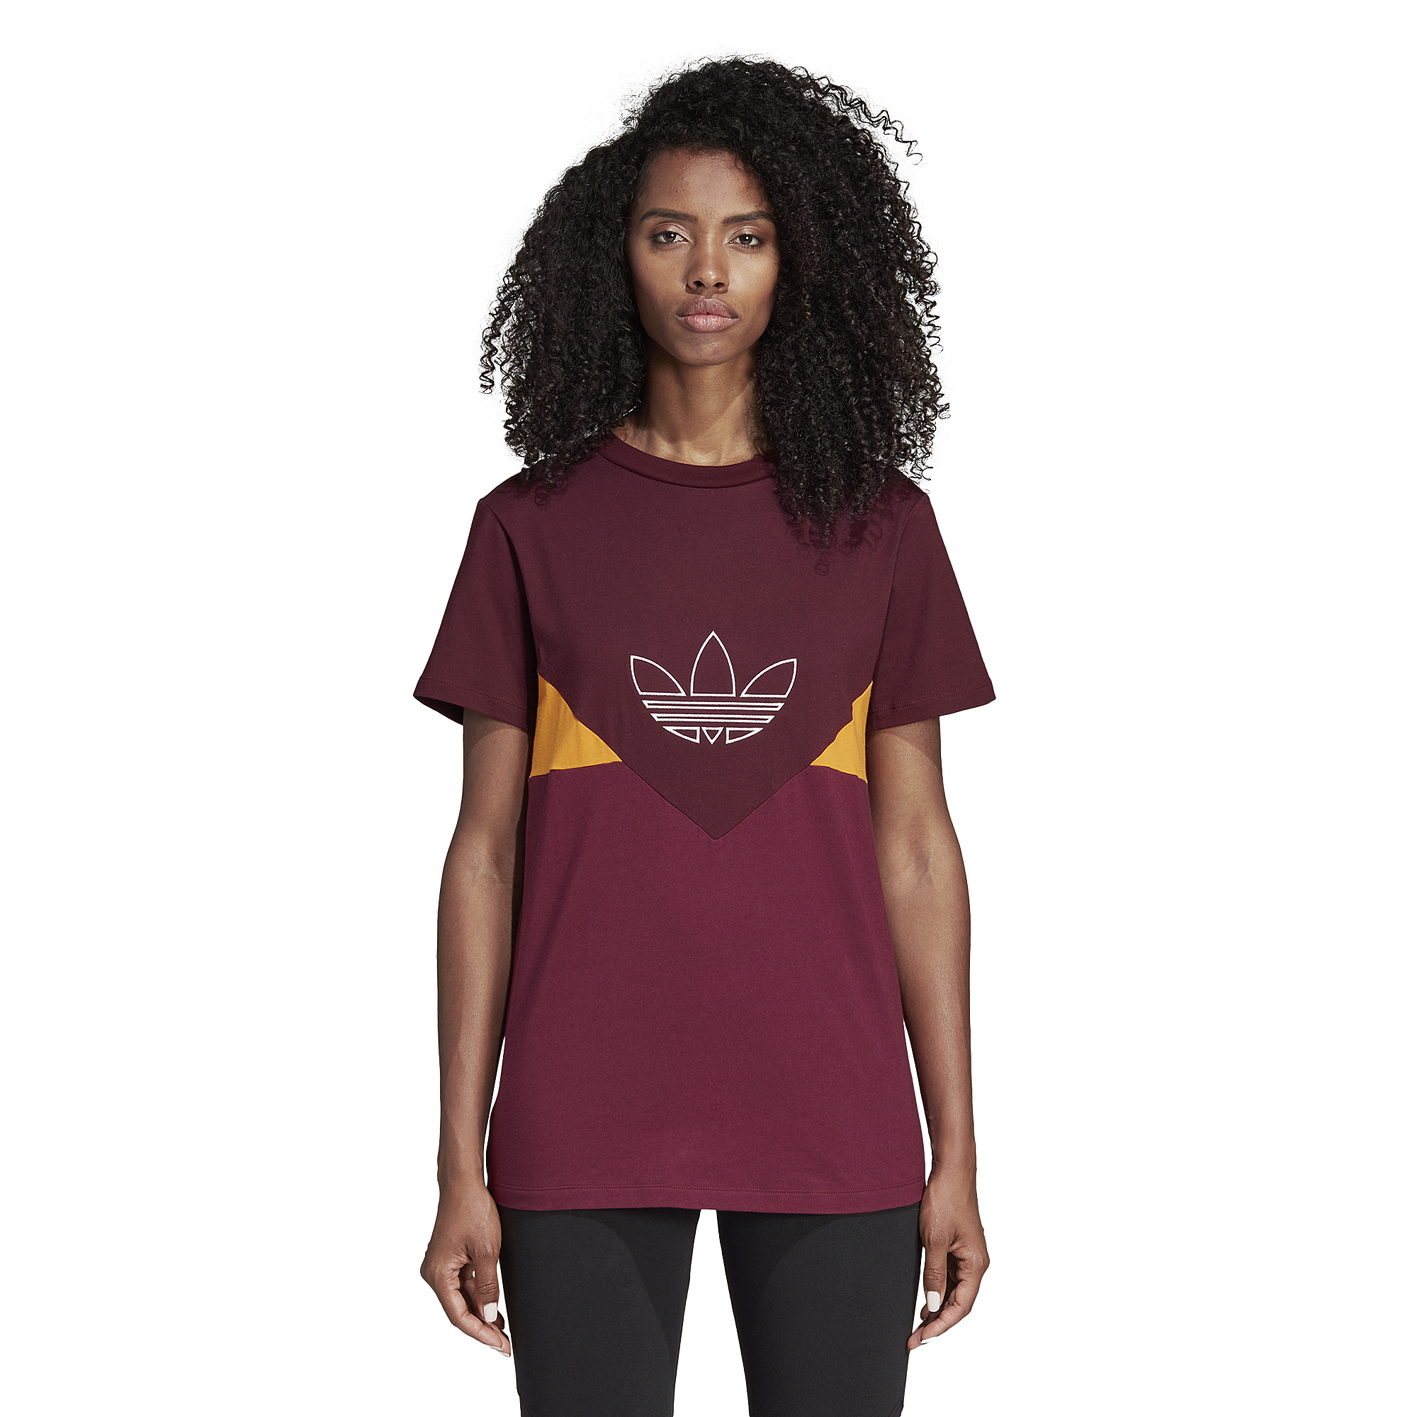 b6ca67c0ba8 adidas Originals Colorado Trefoil T-Shirt - Women s - Casual ...